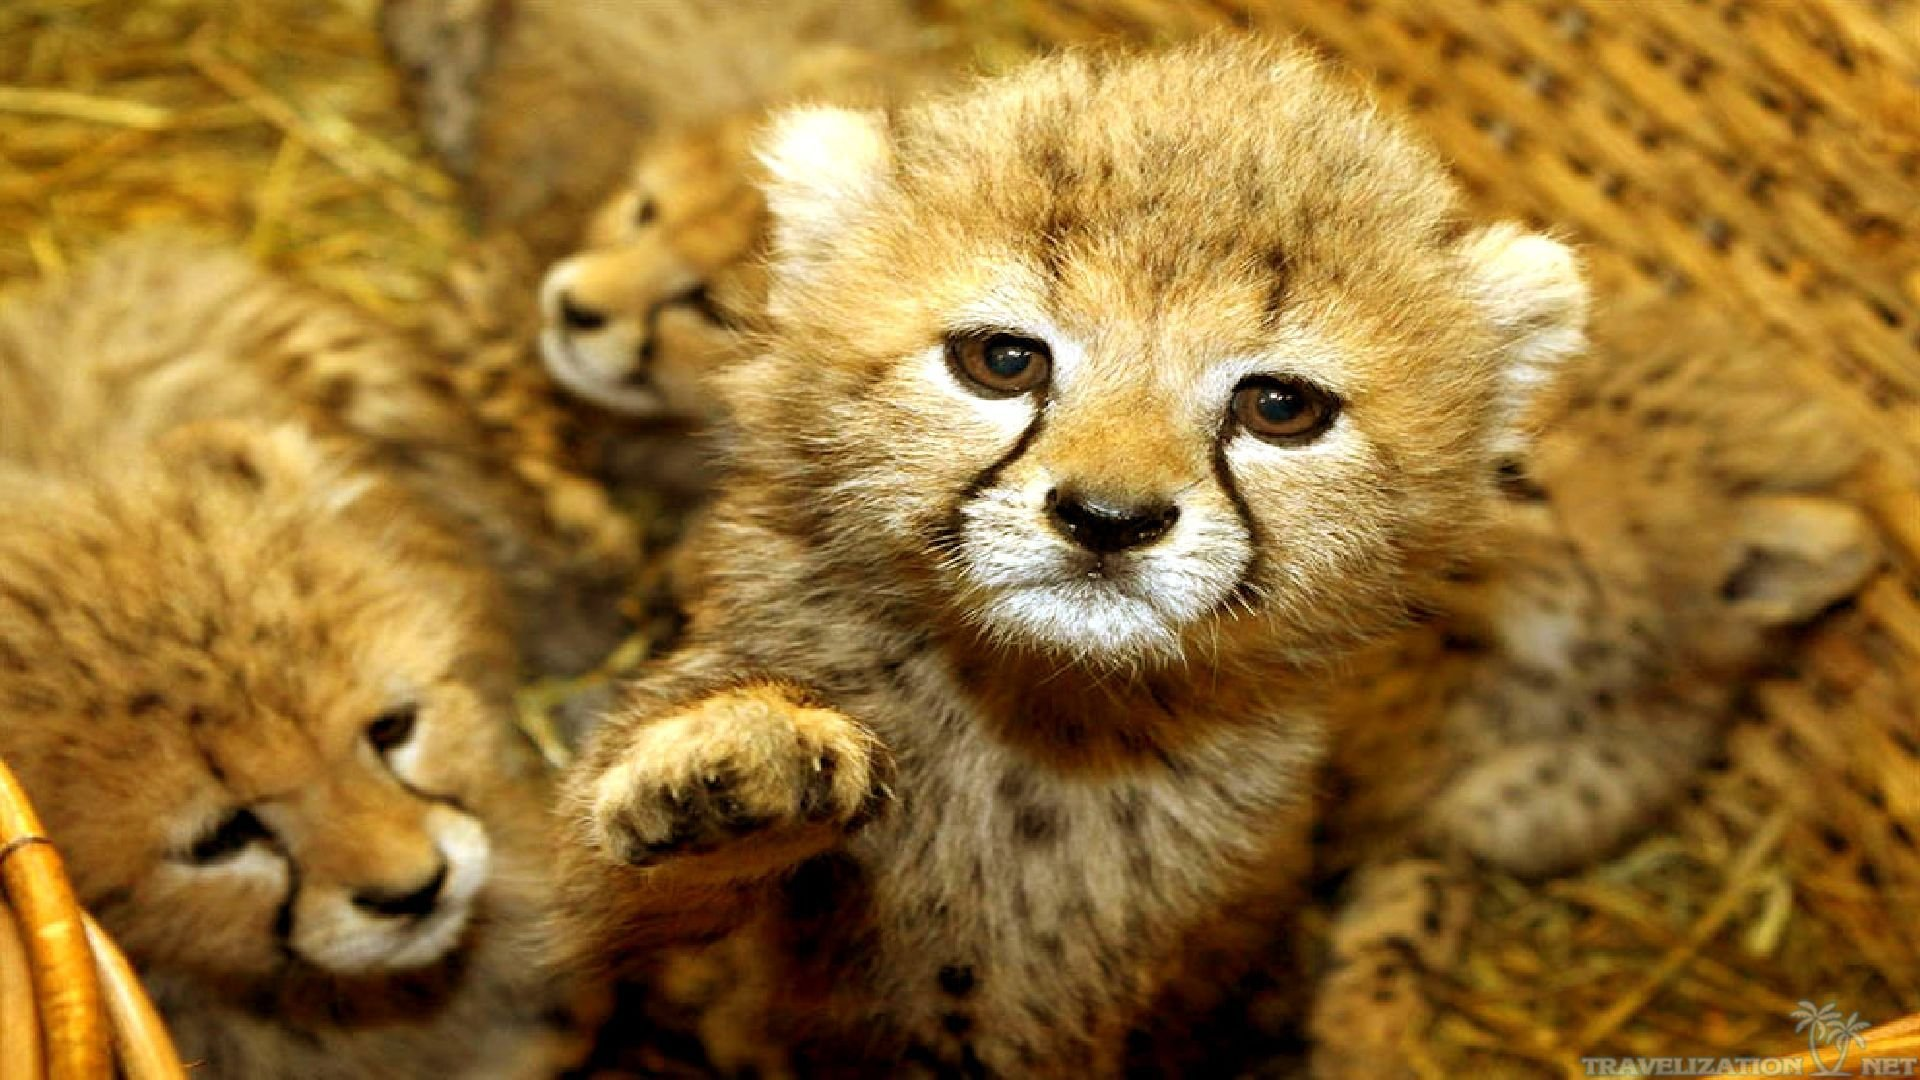 Cute Baby Animal Wallpaper